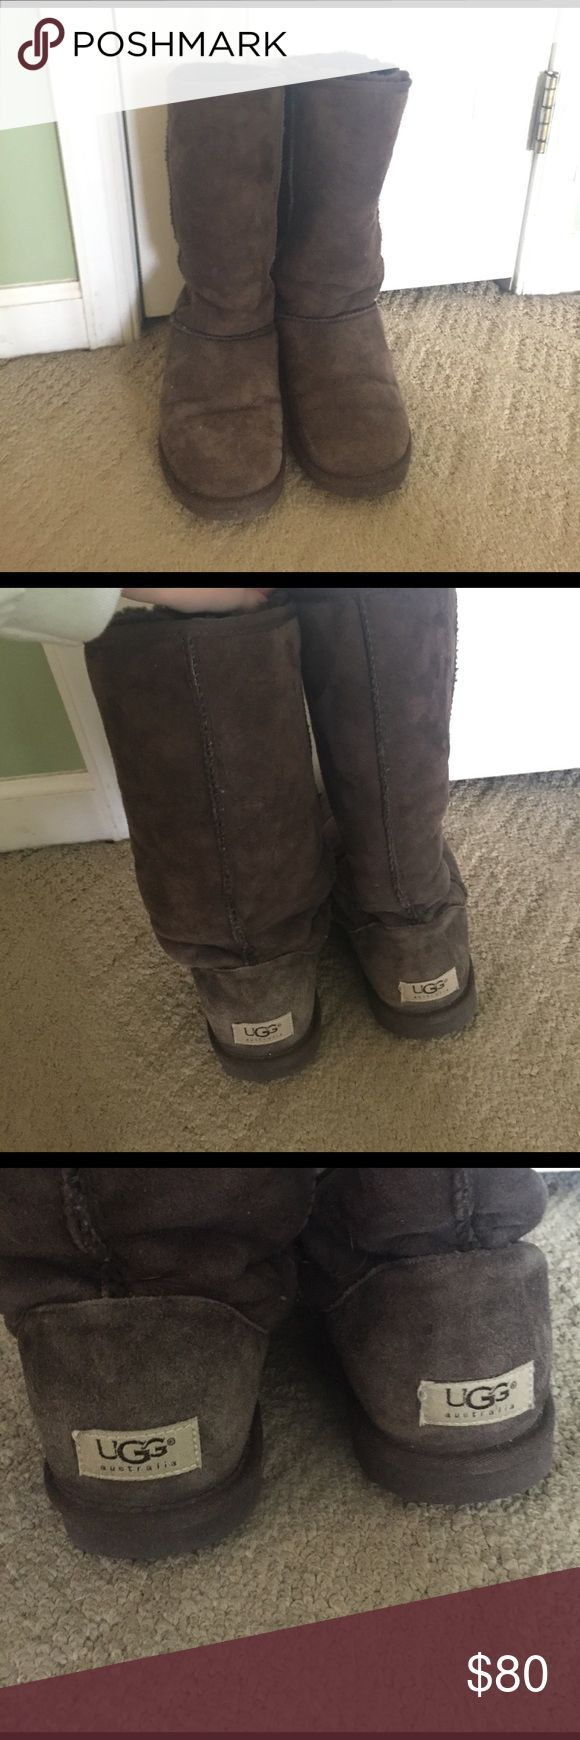 Authentic Brown Tall Ugg Boots These are in great condition, I just have too many pairs of uggs so I'm trying to get rid of ones I don't often wear. UGG Shoes Winter & Rain Boots